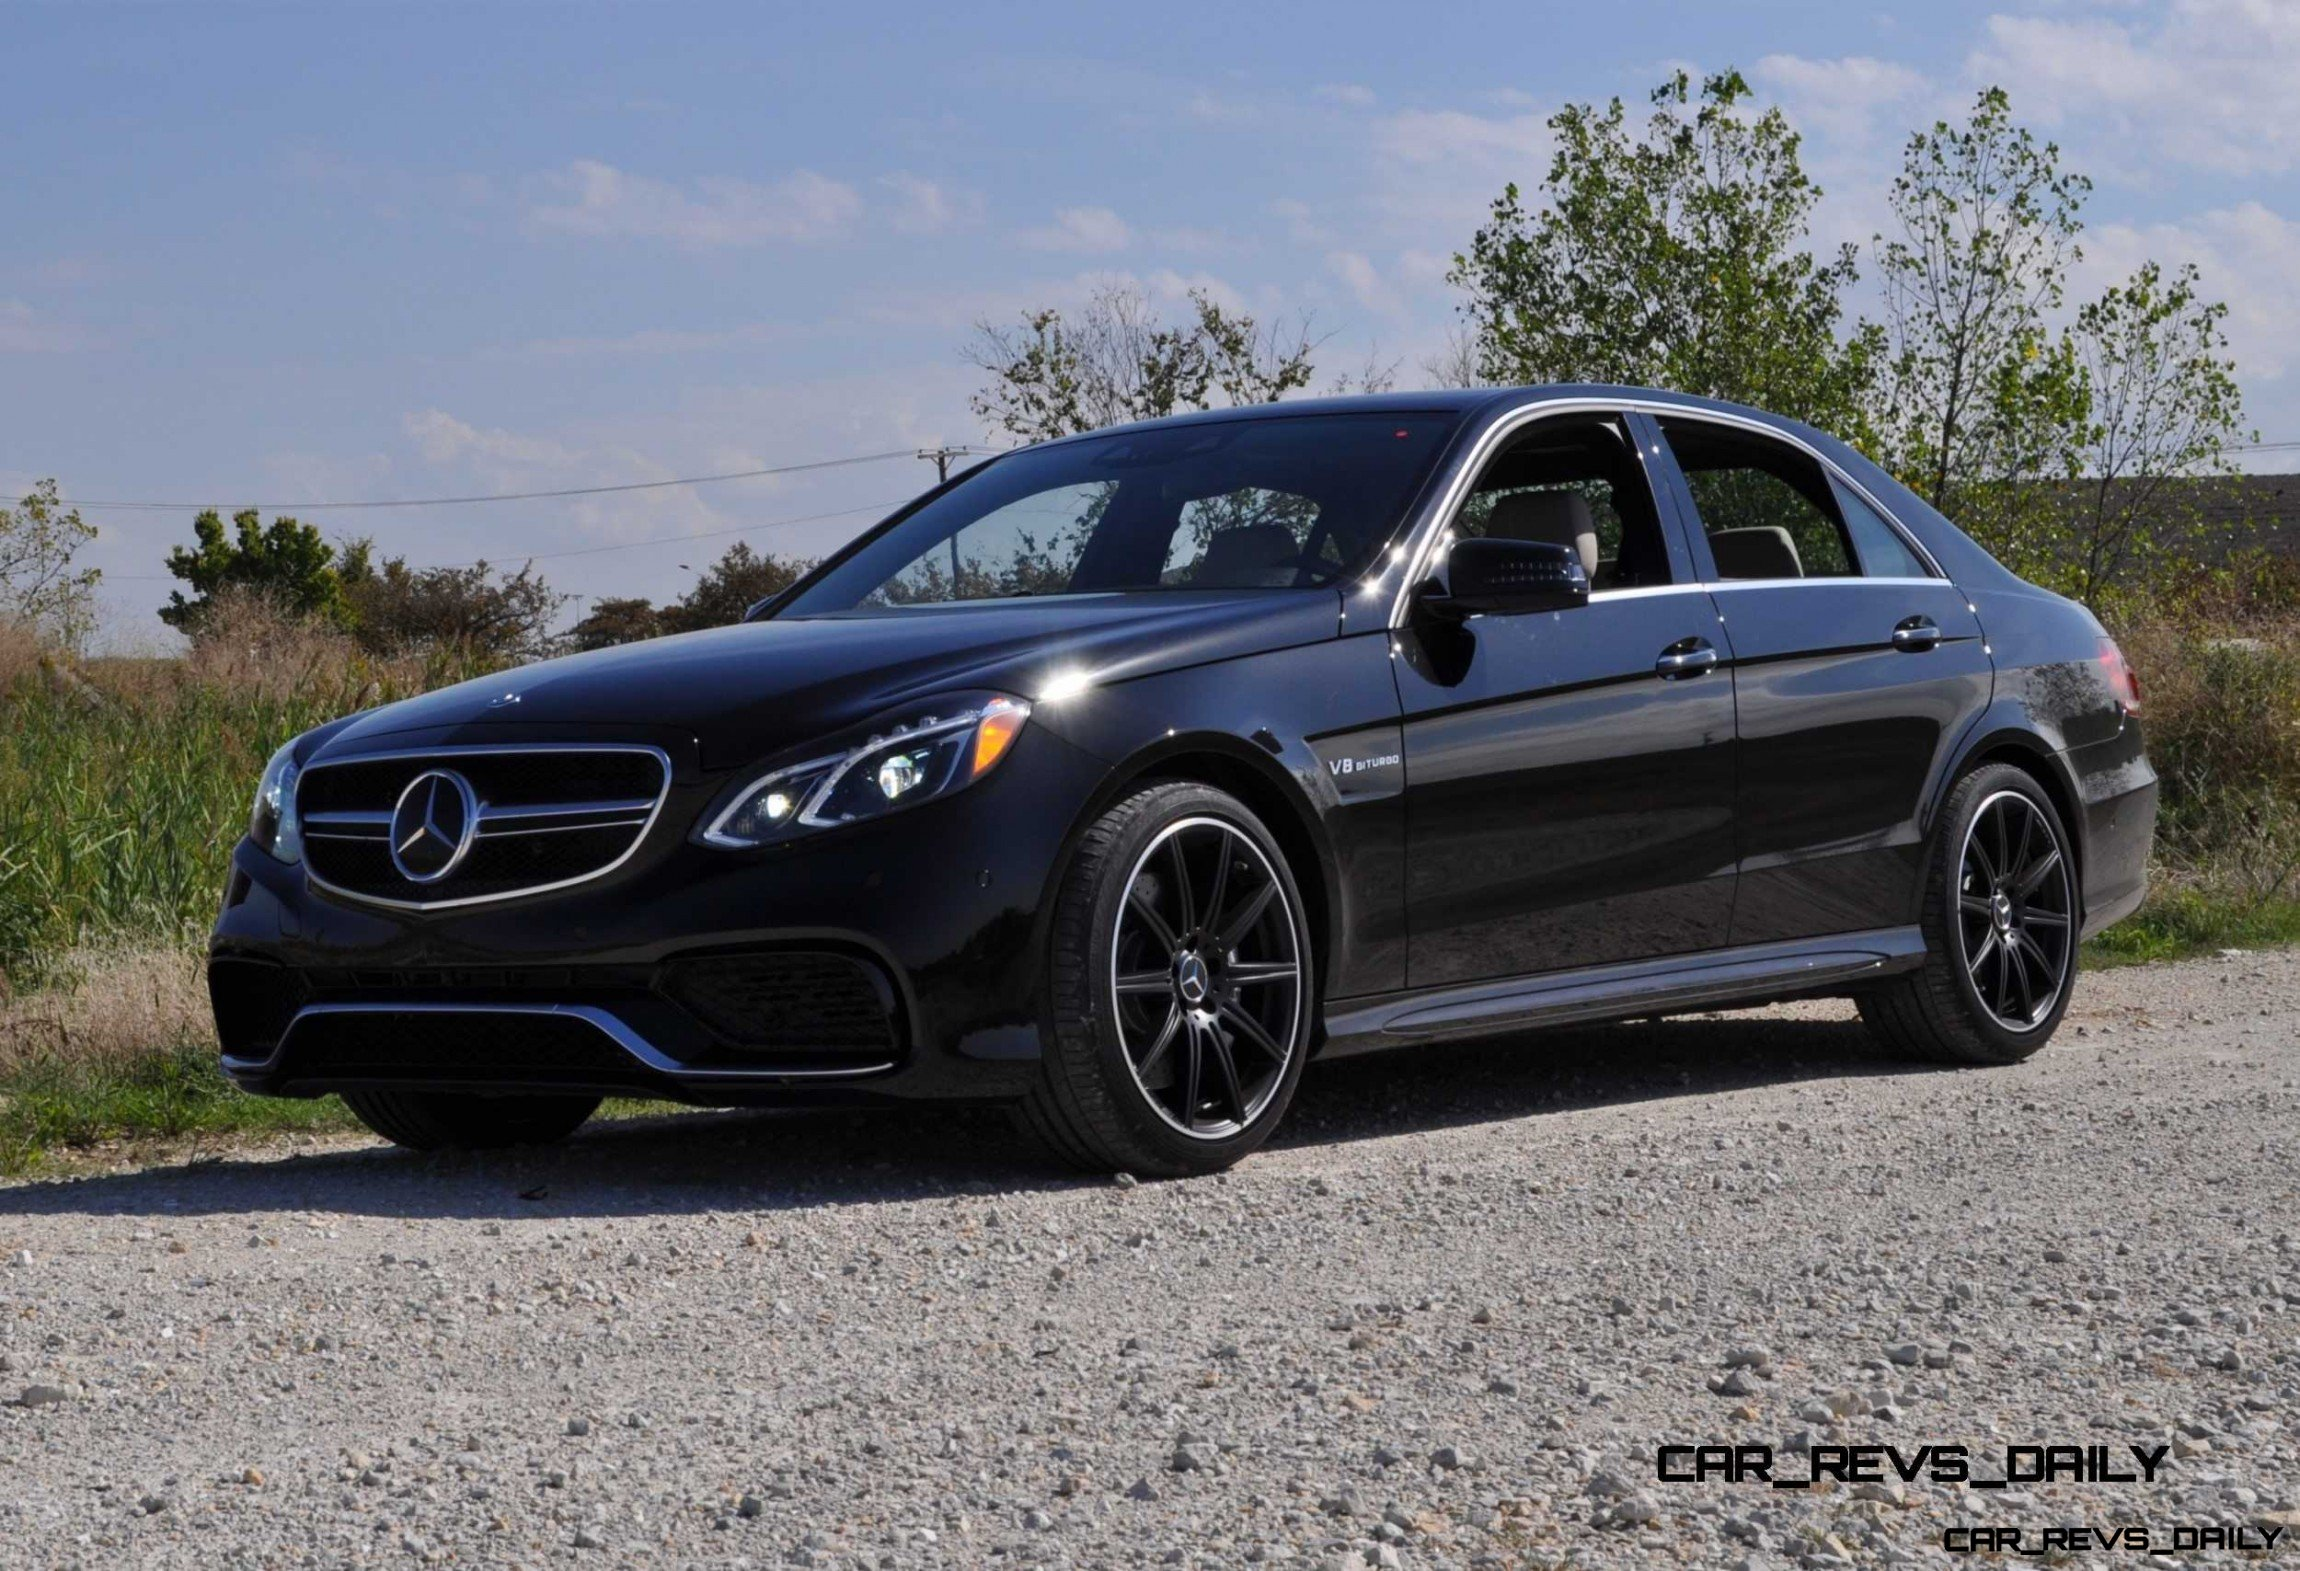 2014 e63 amg 4matic s model in 30 high res images. Black Bedroom Furniture Sets. Home Design Ideas